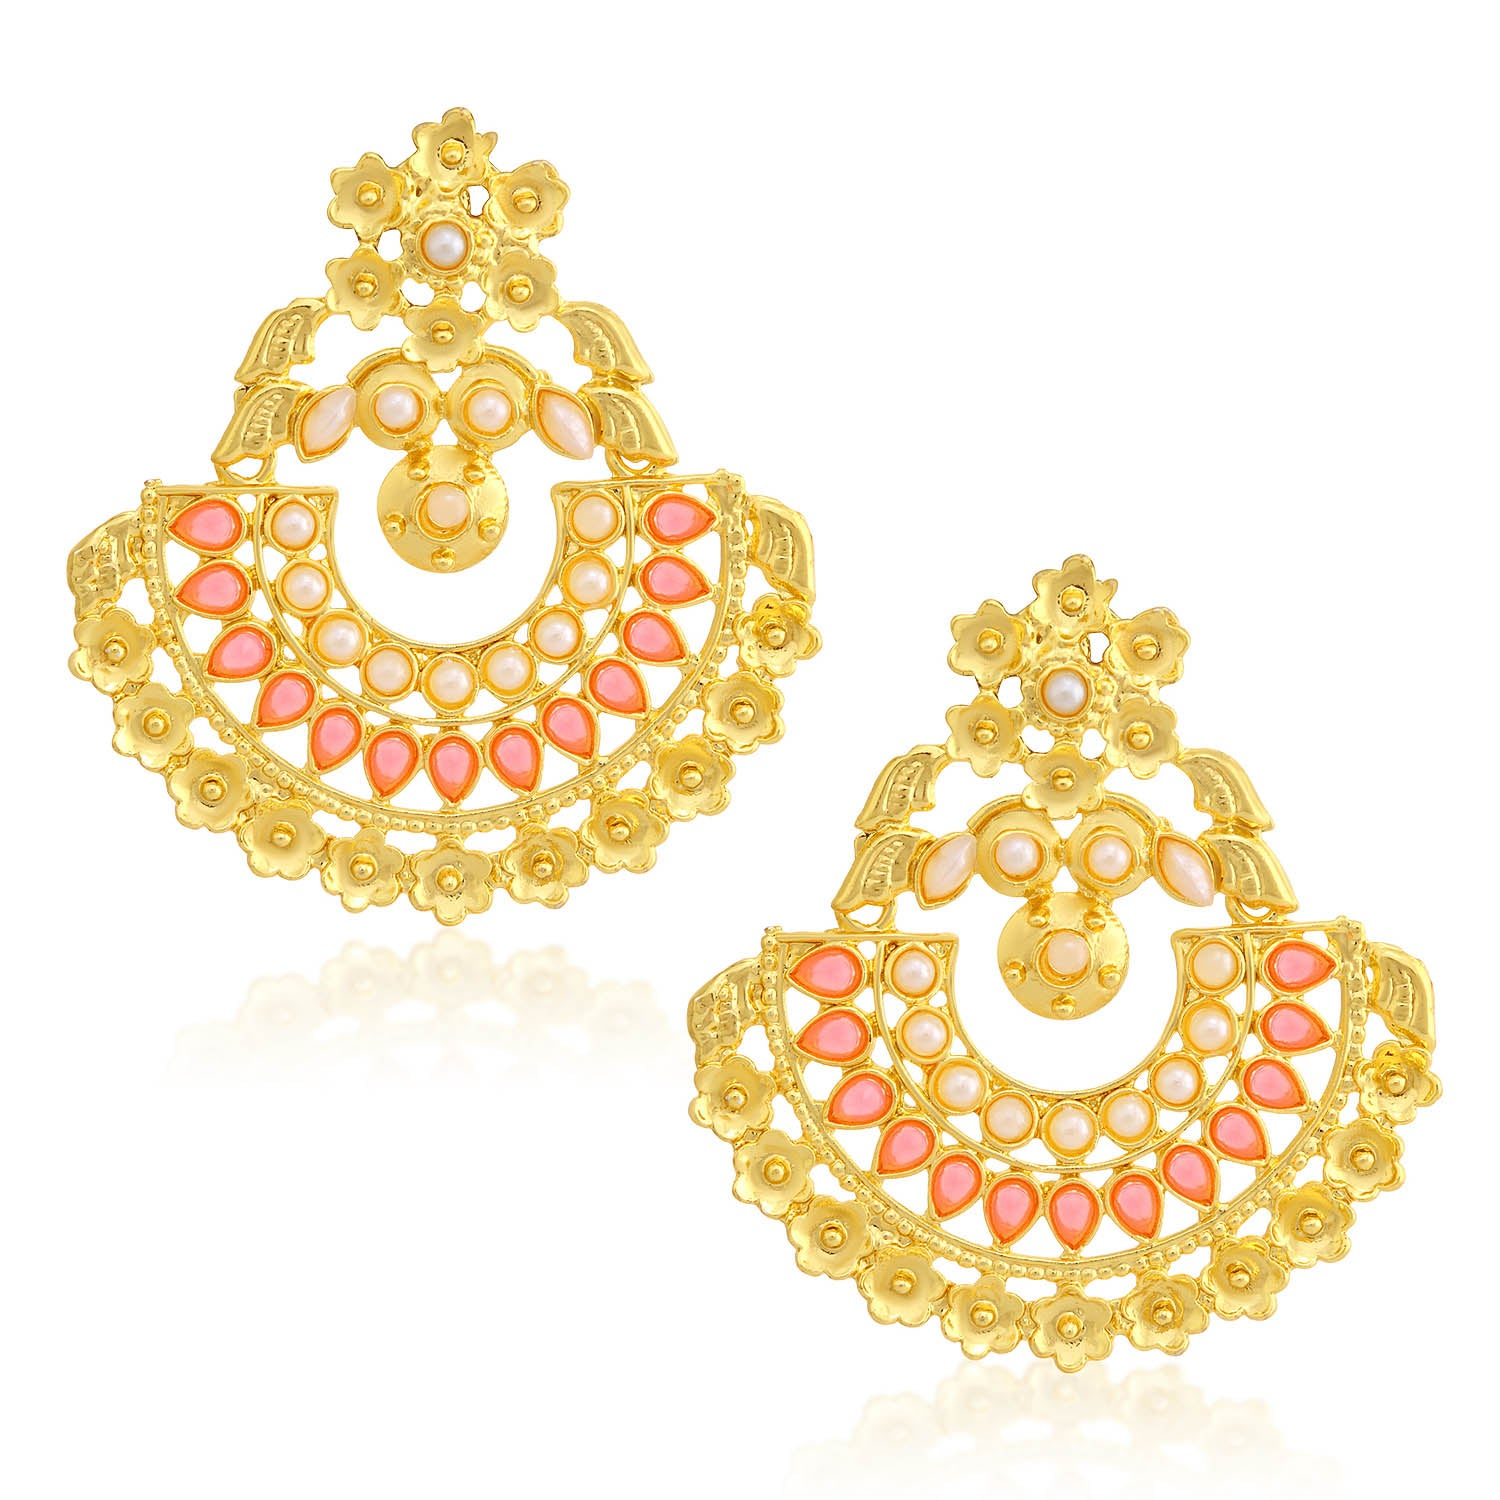 Sukkhi Glimmery Pearl Gold Plated Floral Chandbali Earring For Women-SUKKHI1-Earring